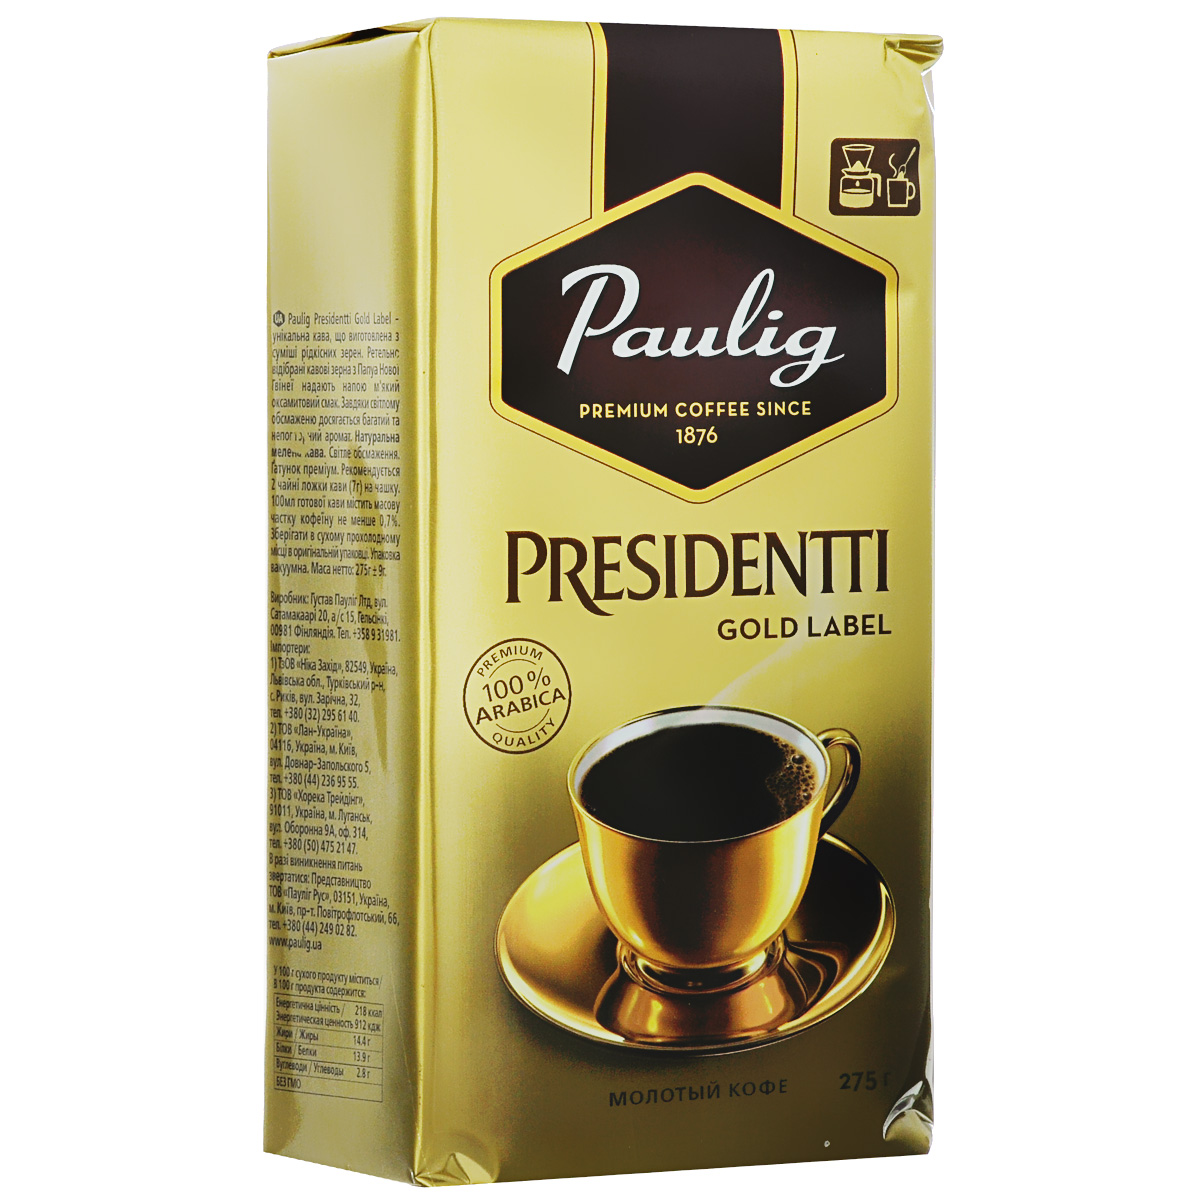 Paulig Presidentti Gold Label кофе молотый, 275 г16563